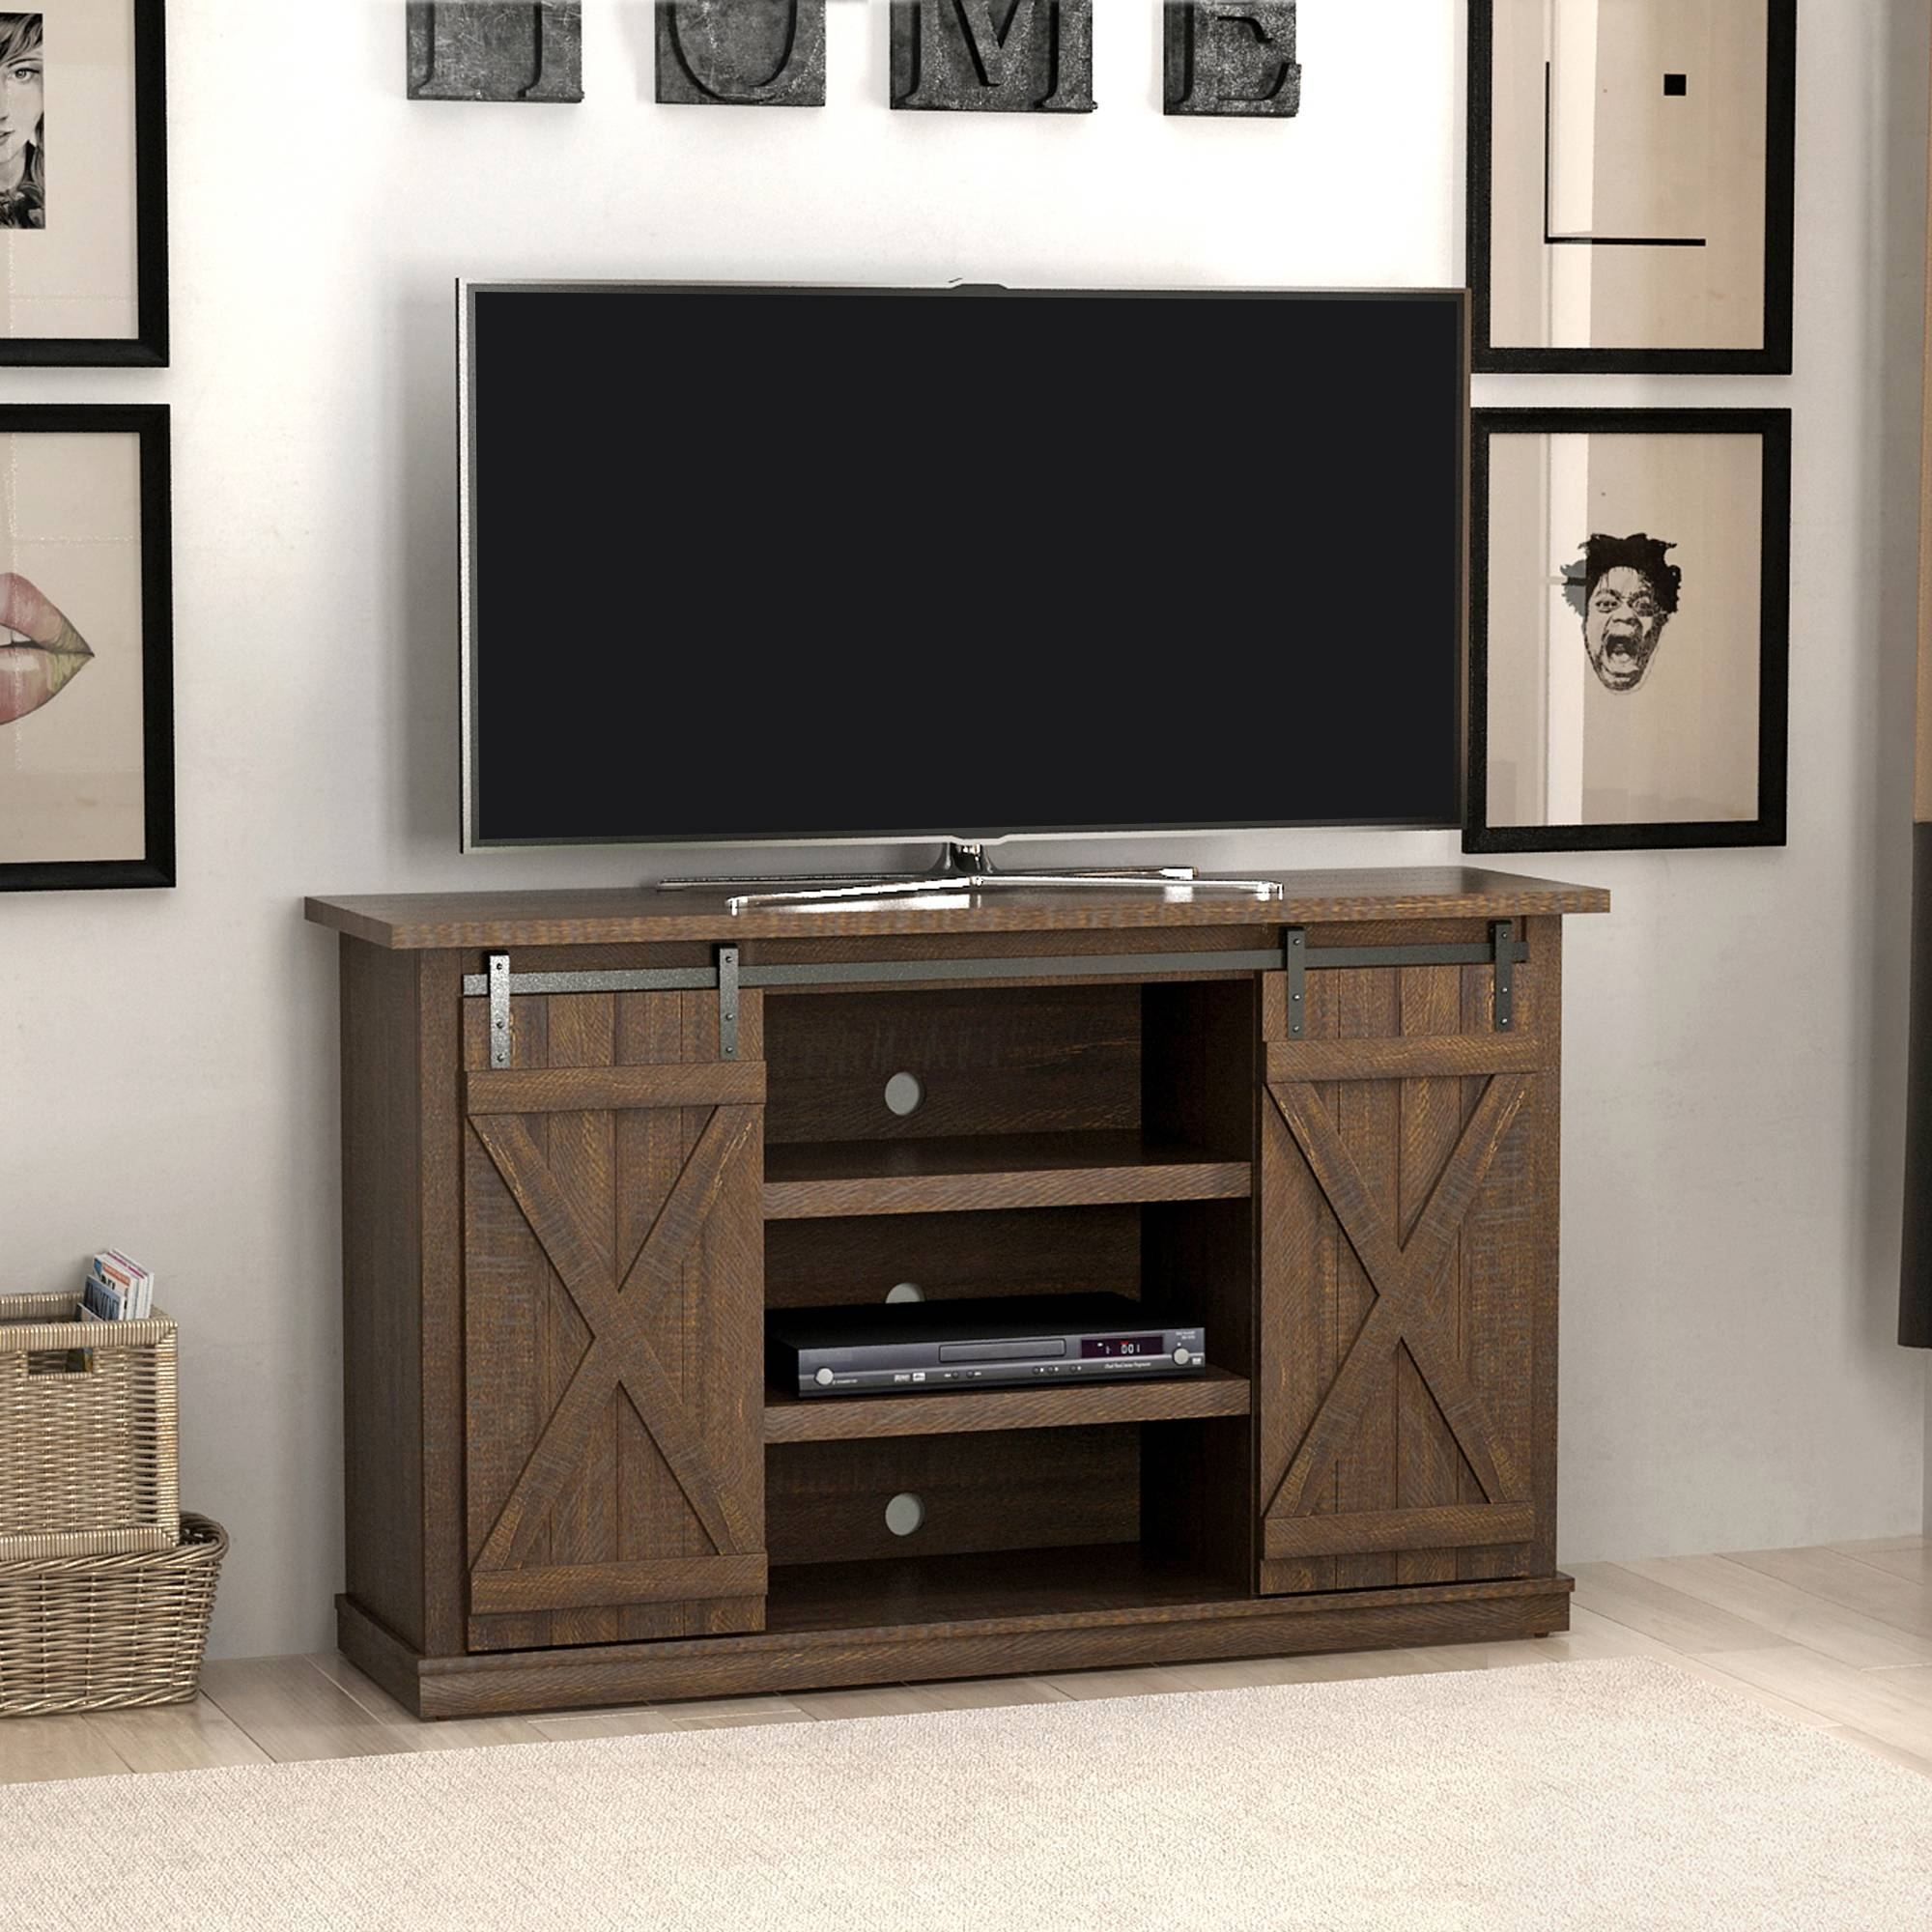 Tv Stands - Walmart intended for 60 Cm High Tv Stand (Image 15 of 15)